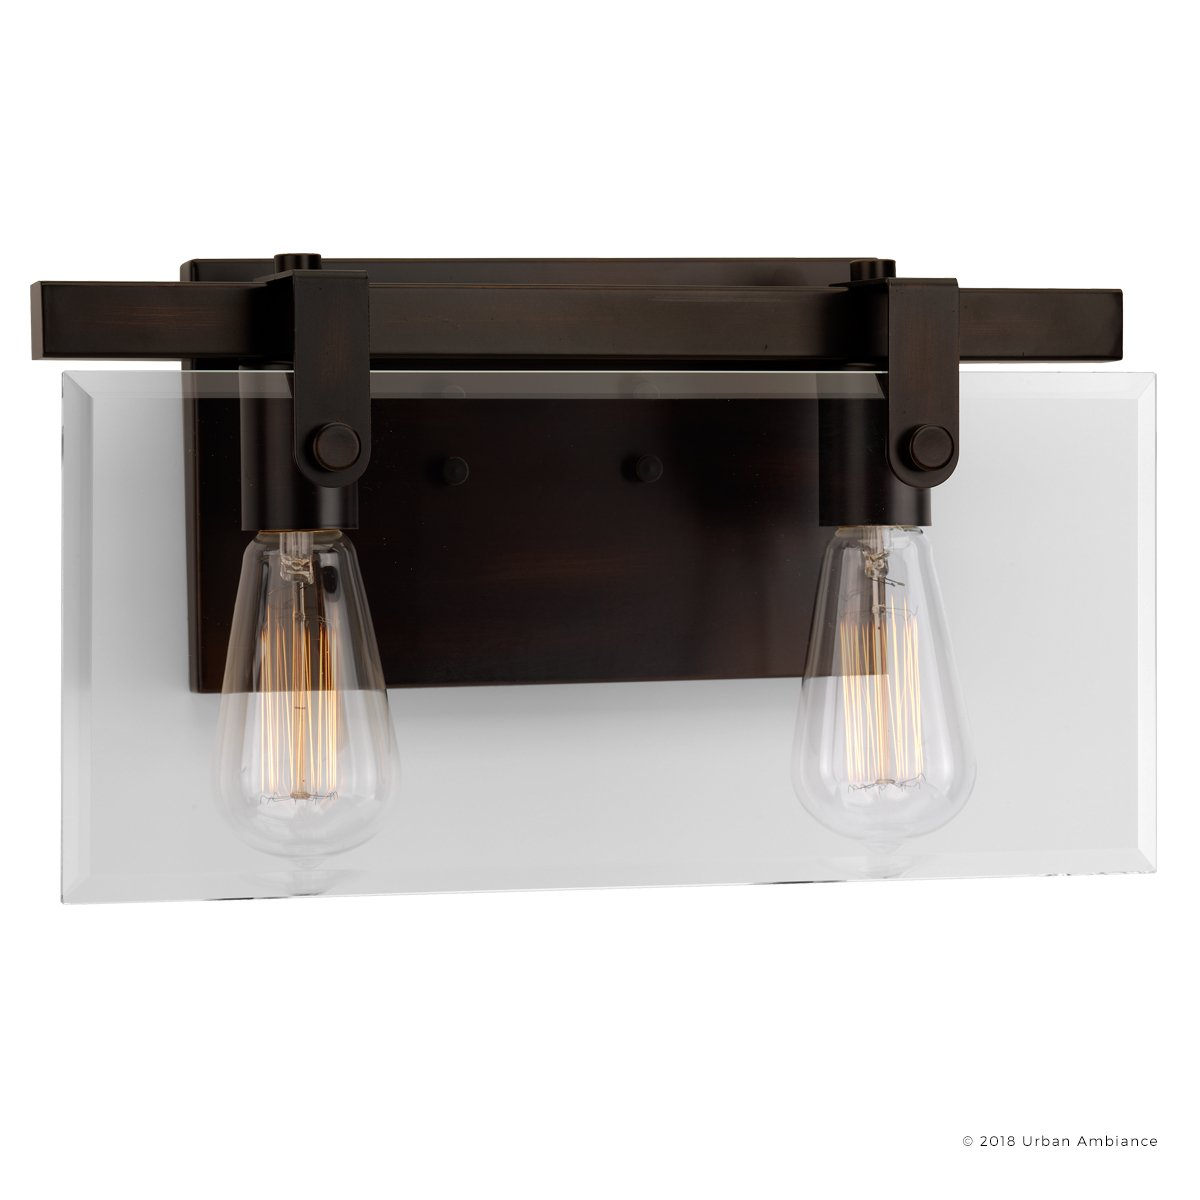 Luxury Modern Farmhouse Bathroom Vanity Light, Medium Size: 8.38'' H x 14.875'' W, with Industrial Chic Style Elements, Olde Bronze Finish, UHP2452 from The Bristol Collection by Urban Ambiance by Urban Ambiance (Image #7)